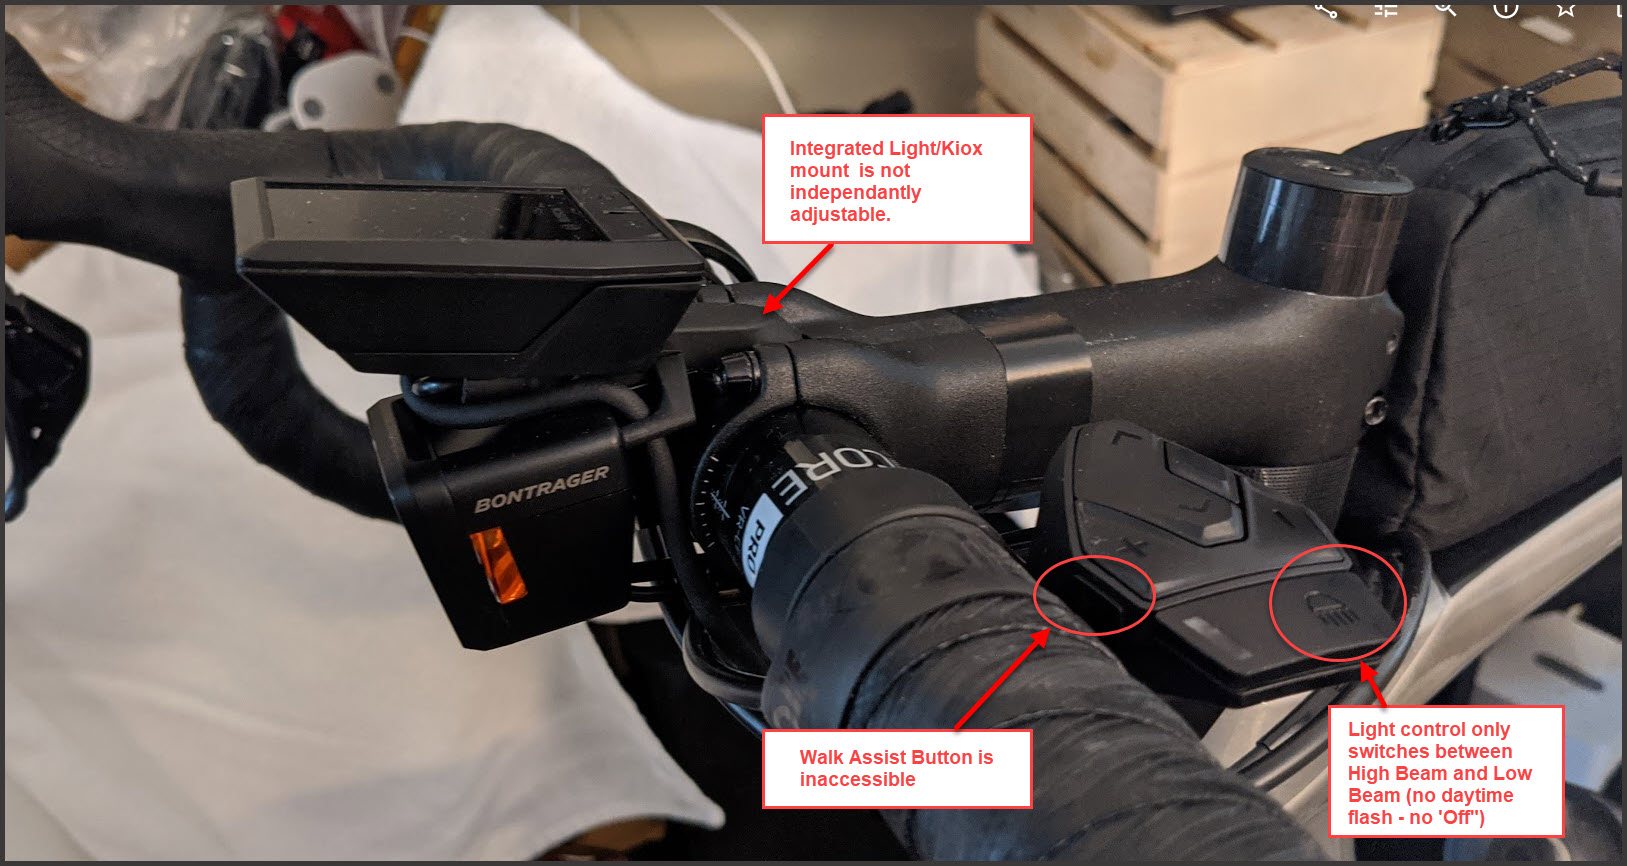 kiox blender light mount.jpg